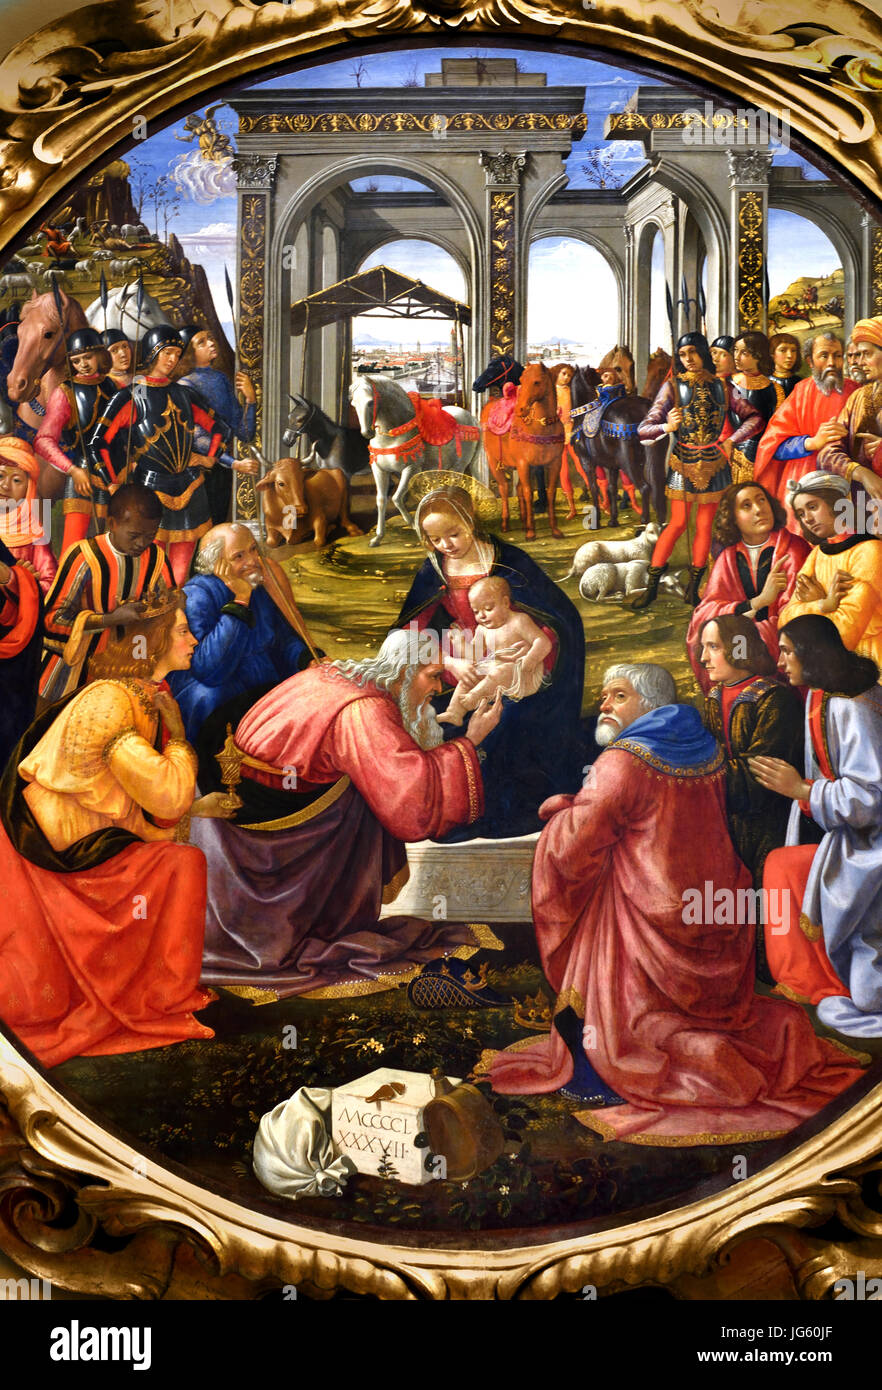 Adoration of the Magi 1487 Domenico Ghirlandaio - Domenico di Tommaso  Curradi di Doffo Bigordi (1449–1494), painter of fresco cycles and  Michelangelo's ...